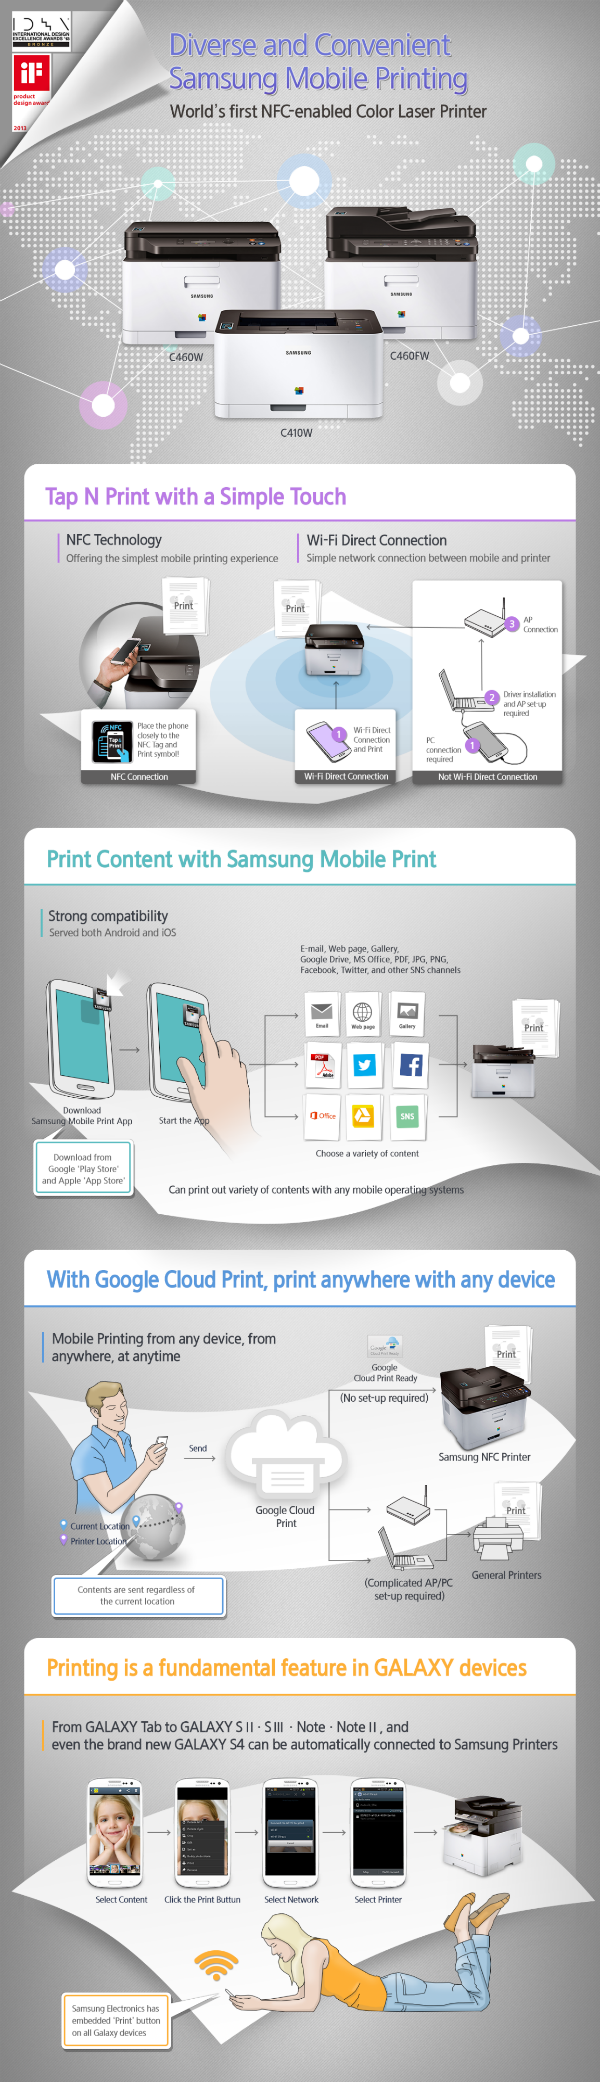 [Infographic] Diverse and Convenient Samsung Mobile Printing